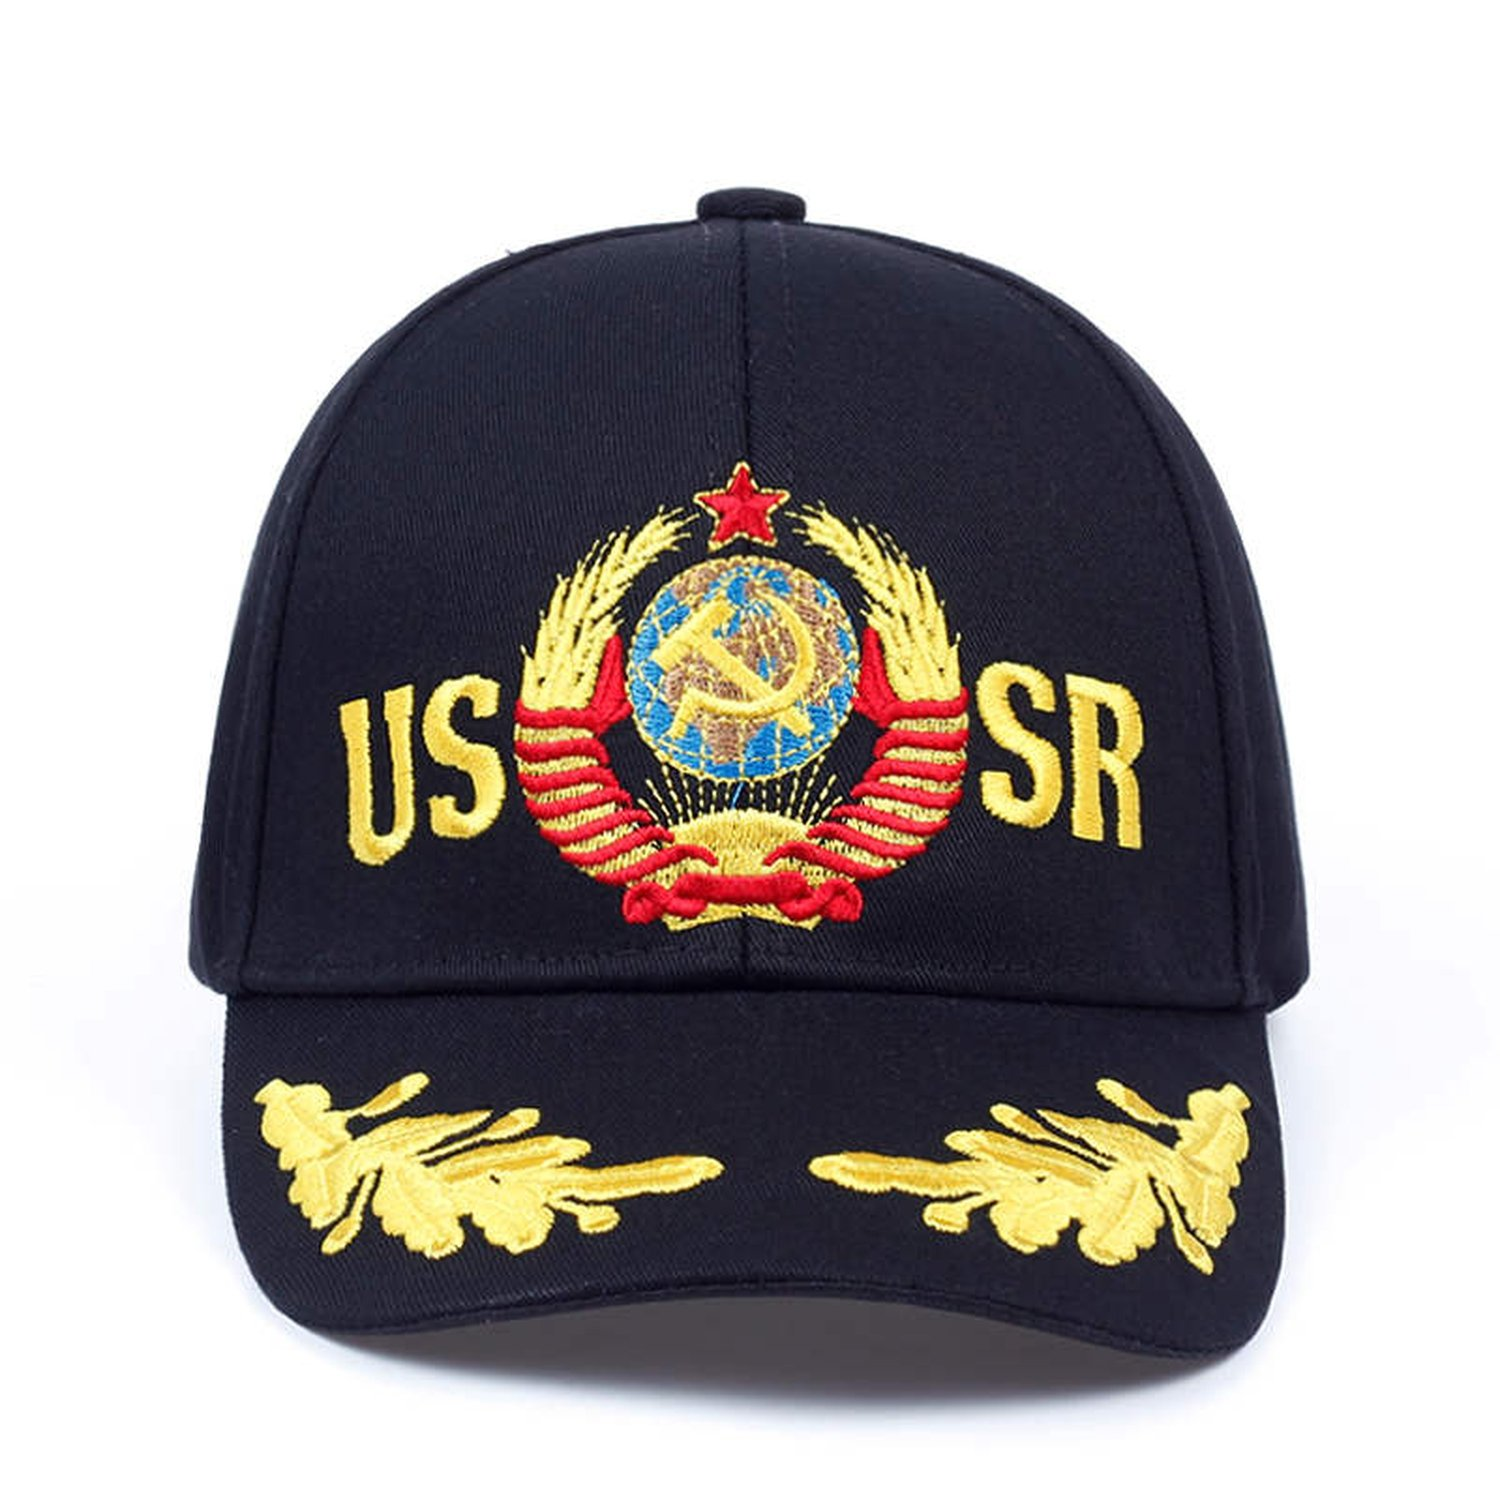 491a6b2f2e0 Moktasp 2019 CCCP USSR Russian Style Baseball Cap Unisex Black Red Cotton Snapback  Cap with 3D Embroidery Hats at Amazon Women s Clothing store